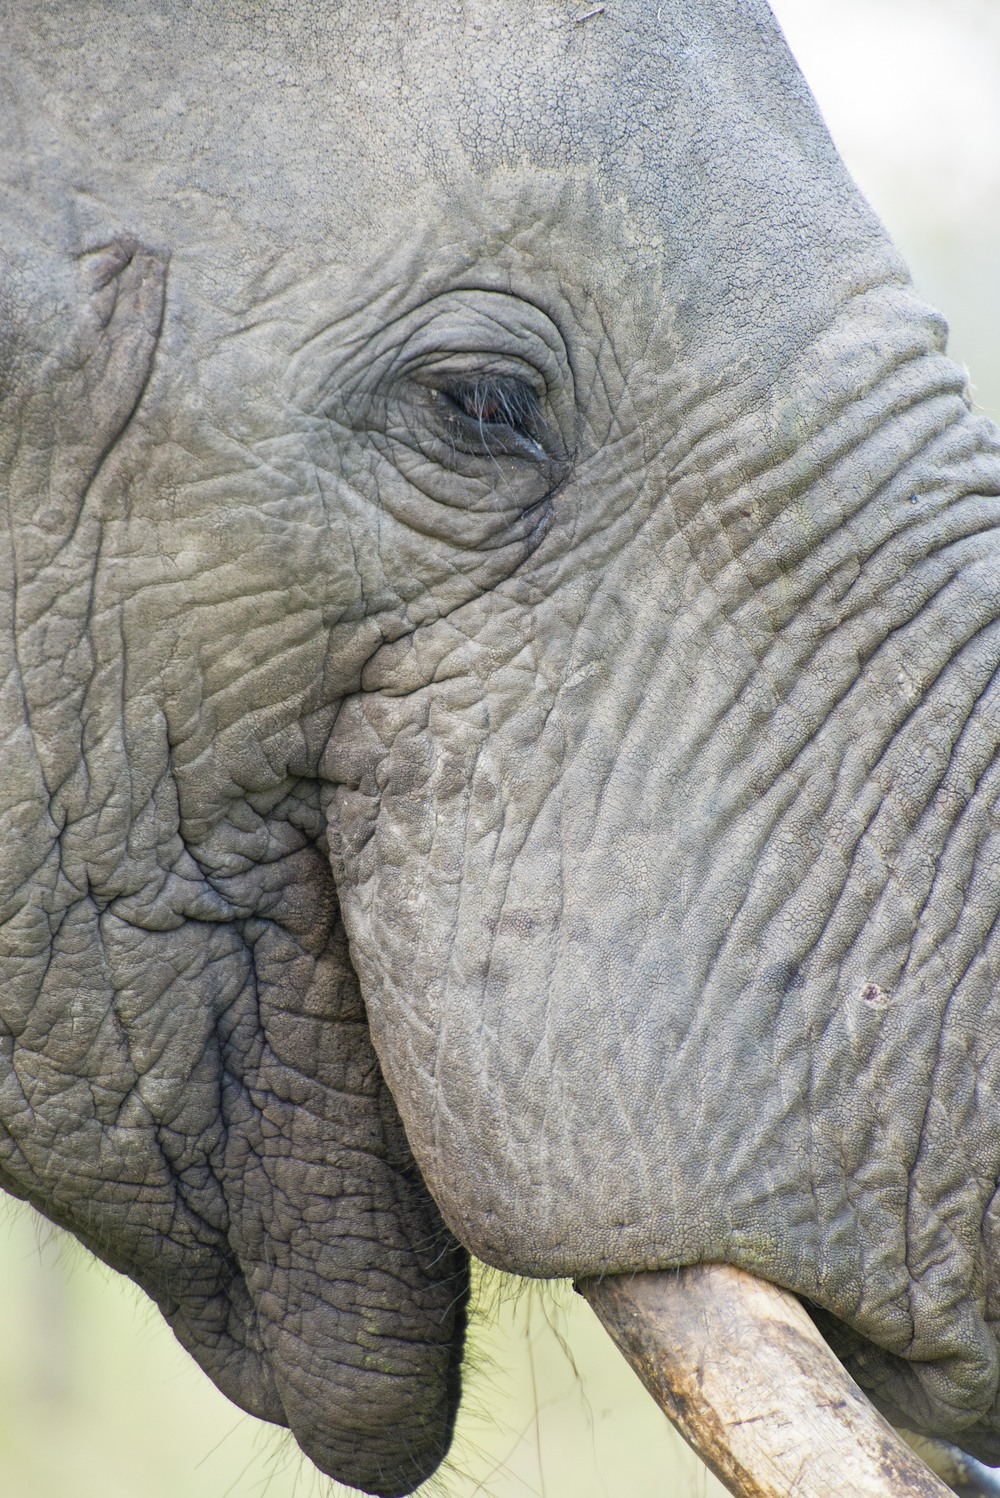 130420_DSC4521 Remarkable Elephant Portrait.jpg